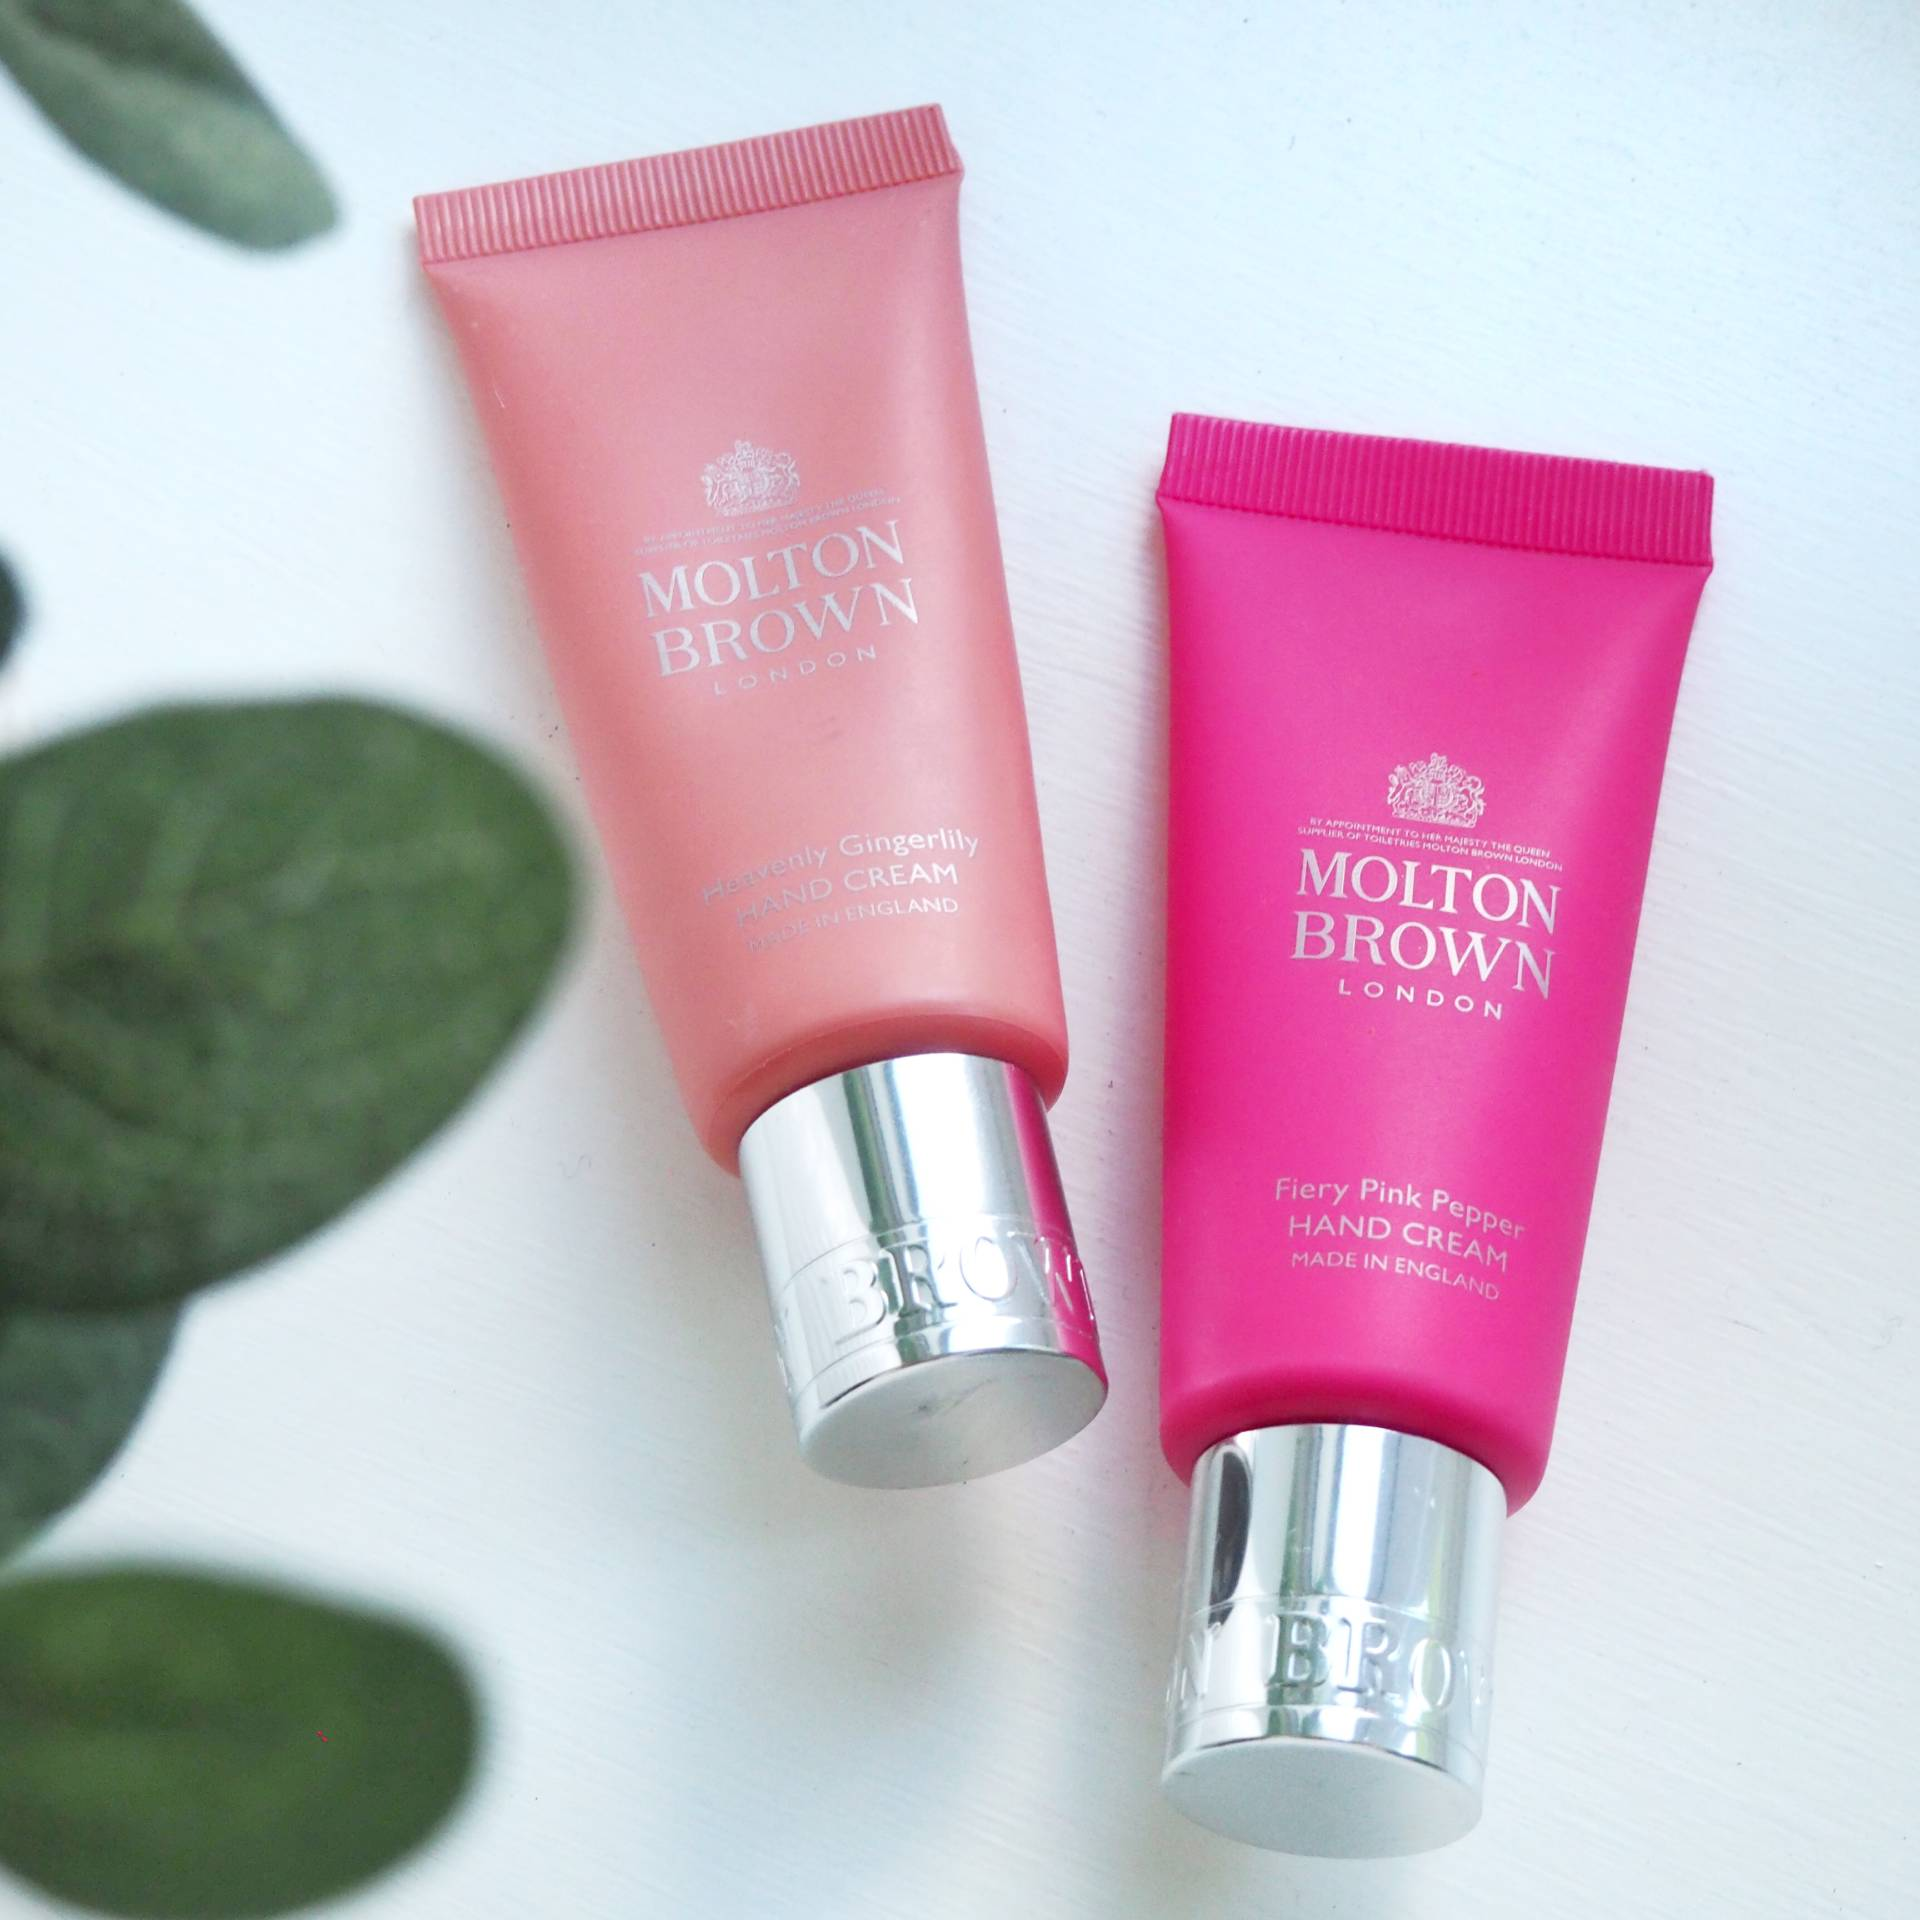 Molton Brown Hand Cream Review